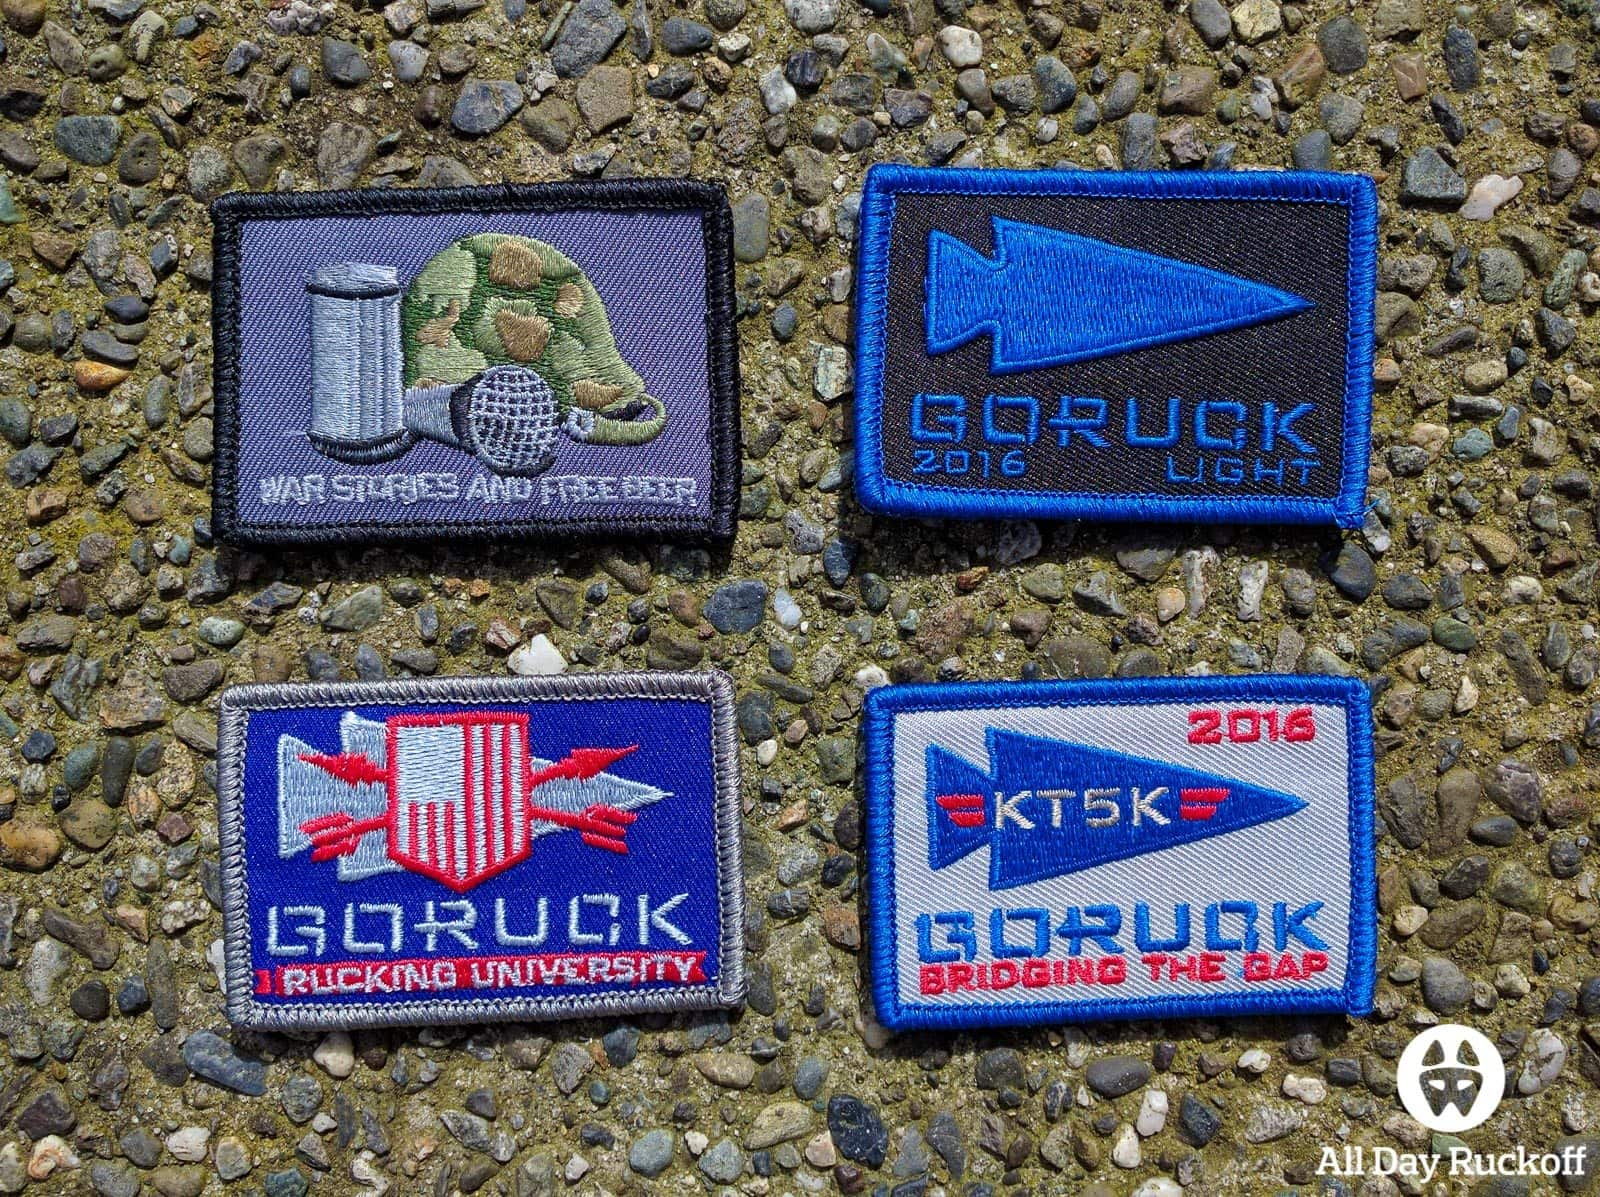 GORUCK Bridging The Gap Weekend - Patches